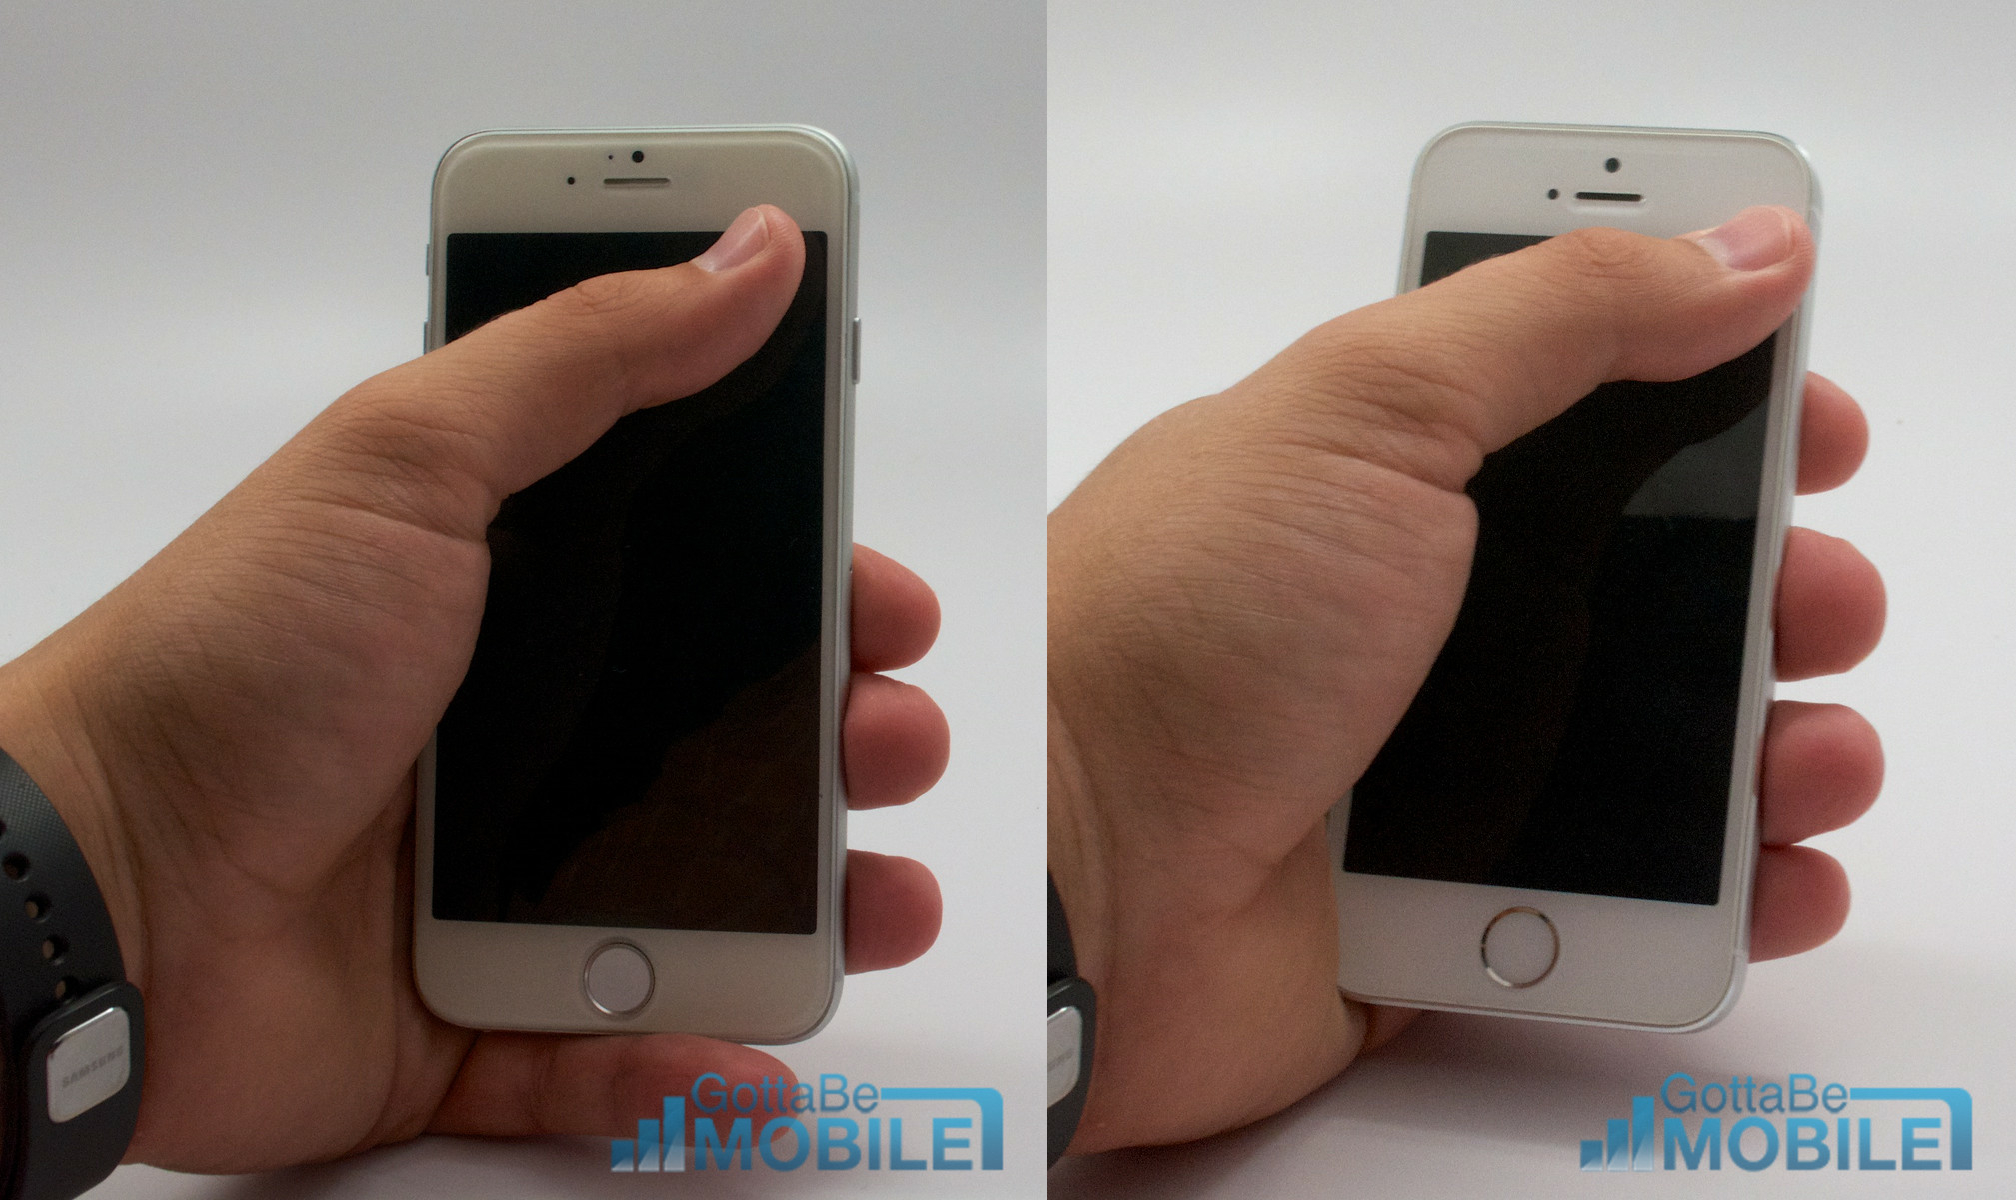 how big is the iphone 5s screen iphone 5s vs iphone 6 19708